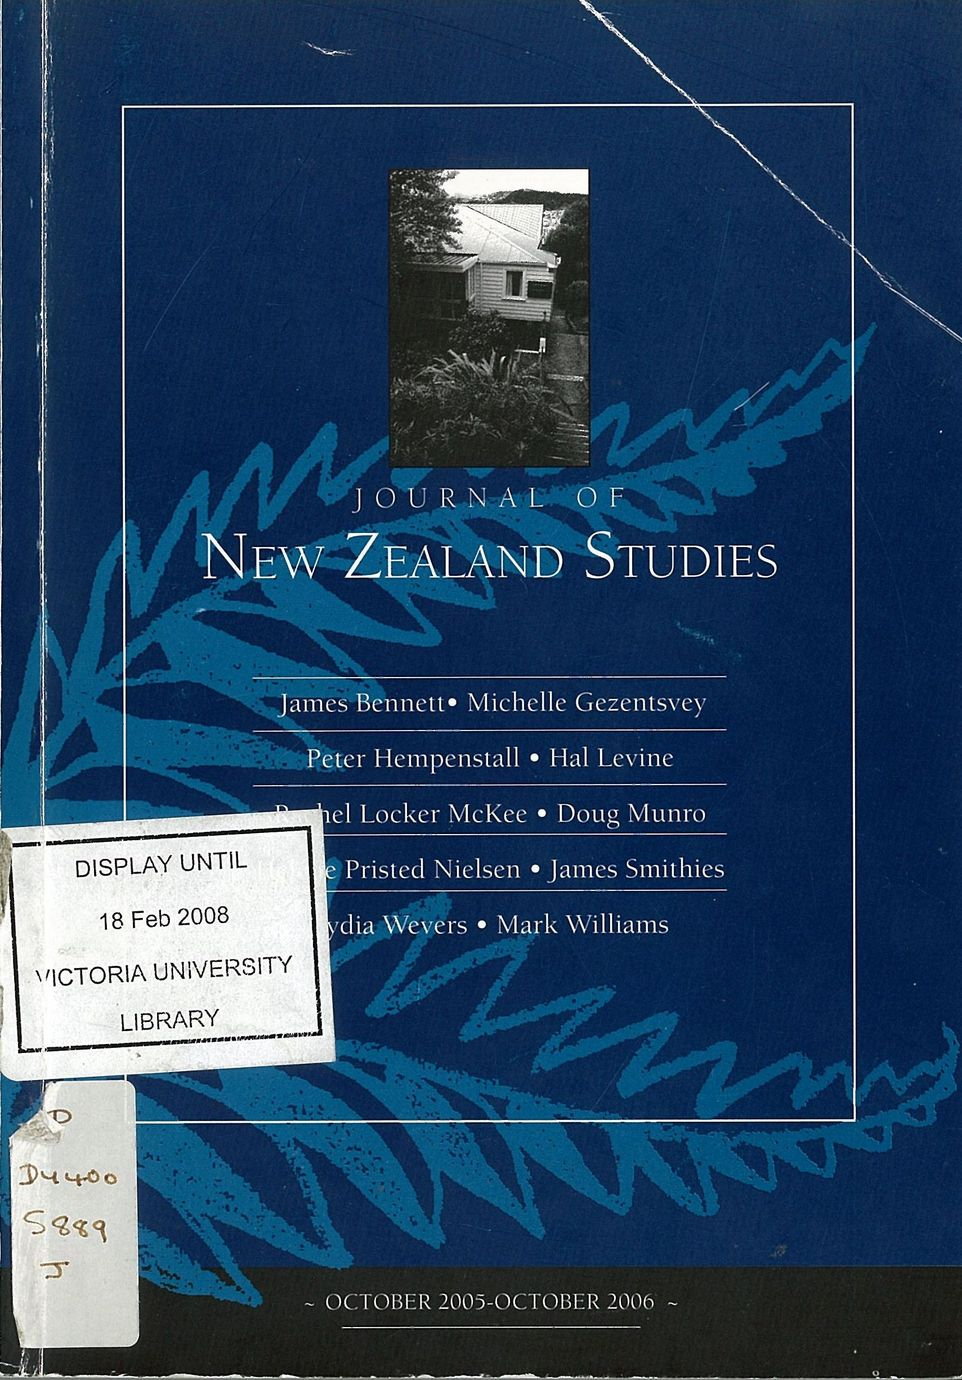 Journal of New Zealand Studies 2006 No. 4/5